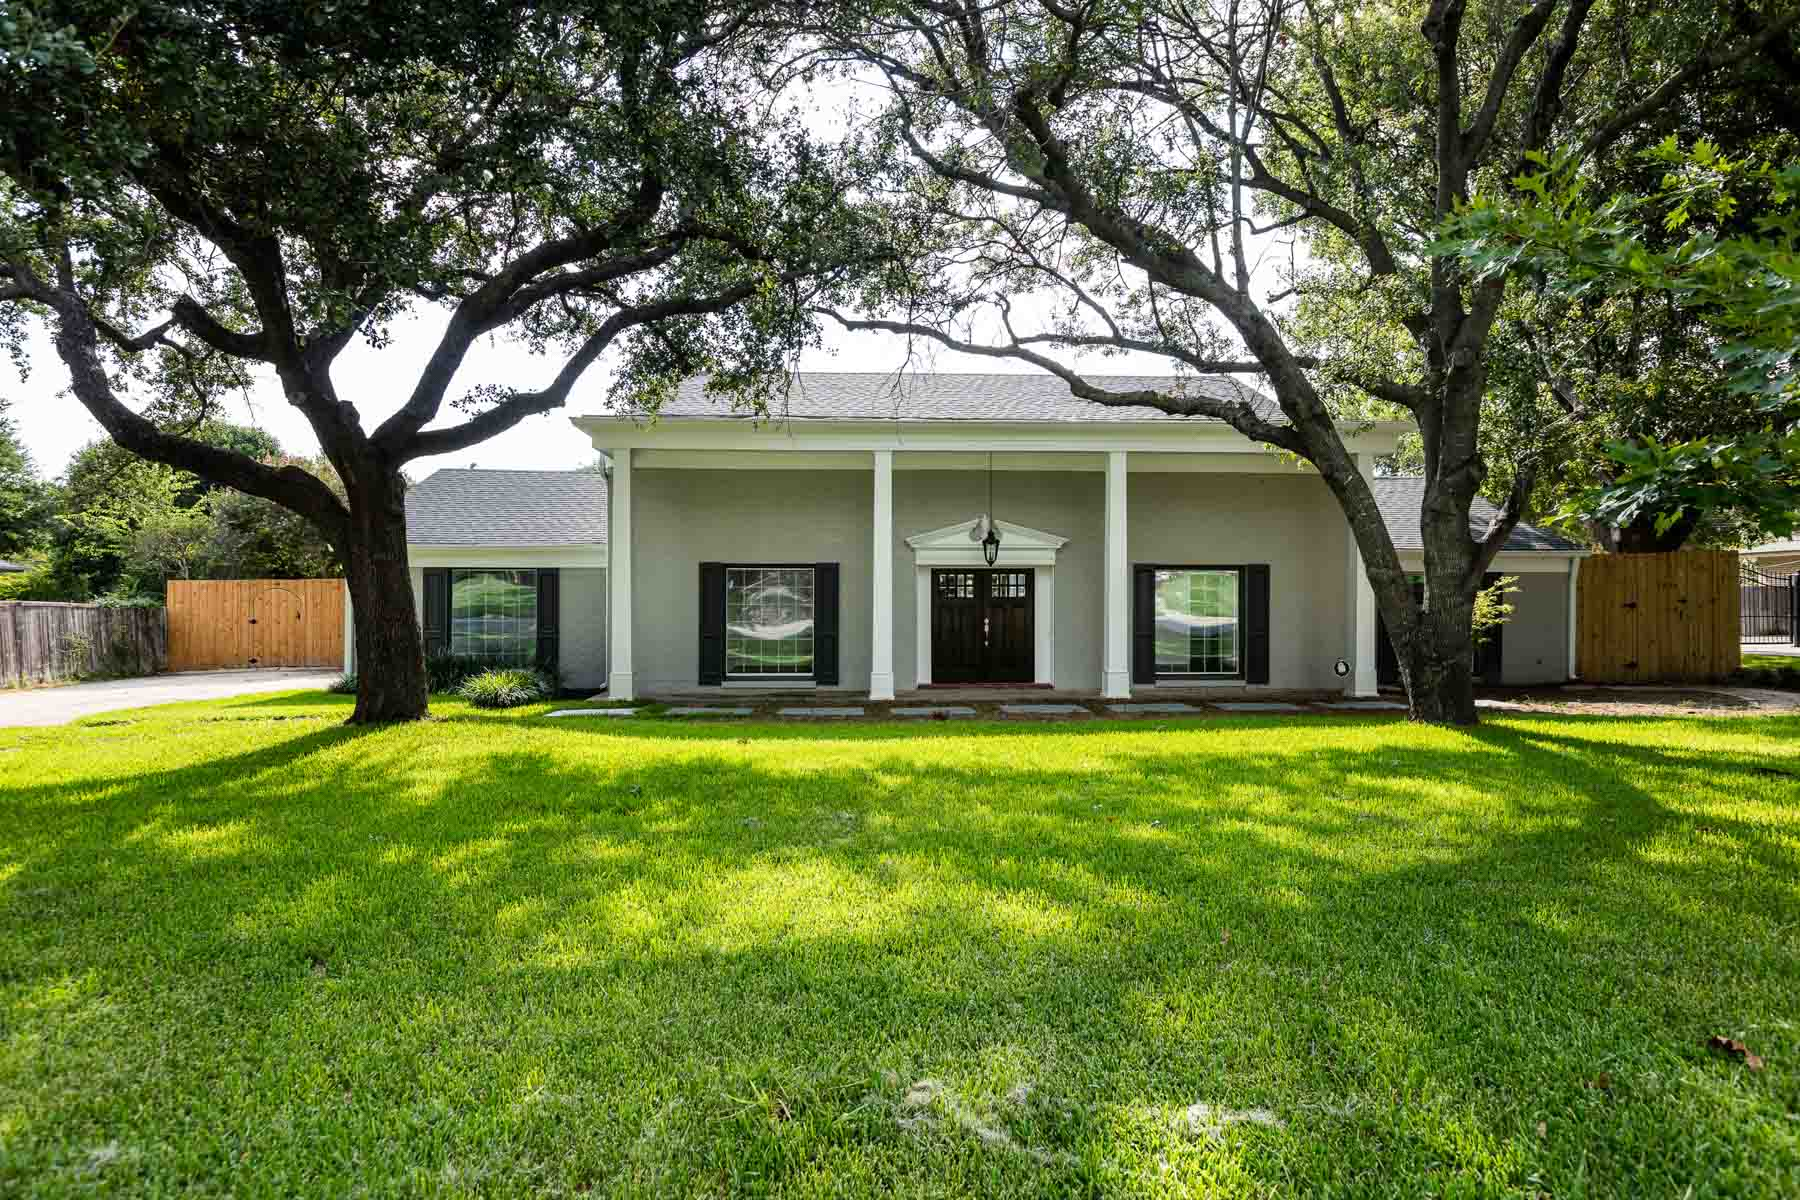 Single Family Home for Sale at Overton Park Colonial 3713 Summercrest Dr. Fort Worth, Texas, 76109 United States